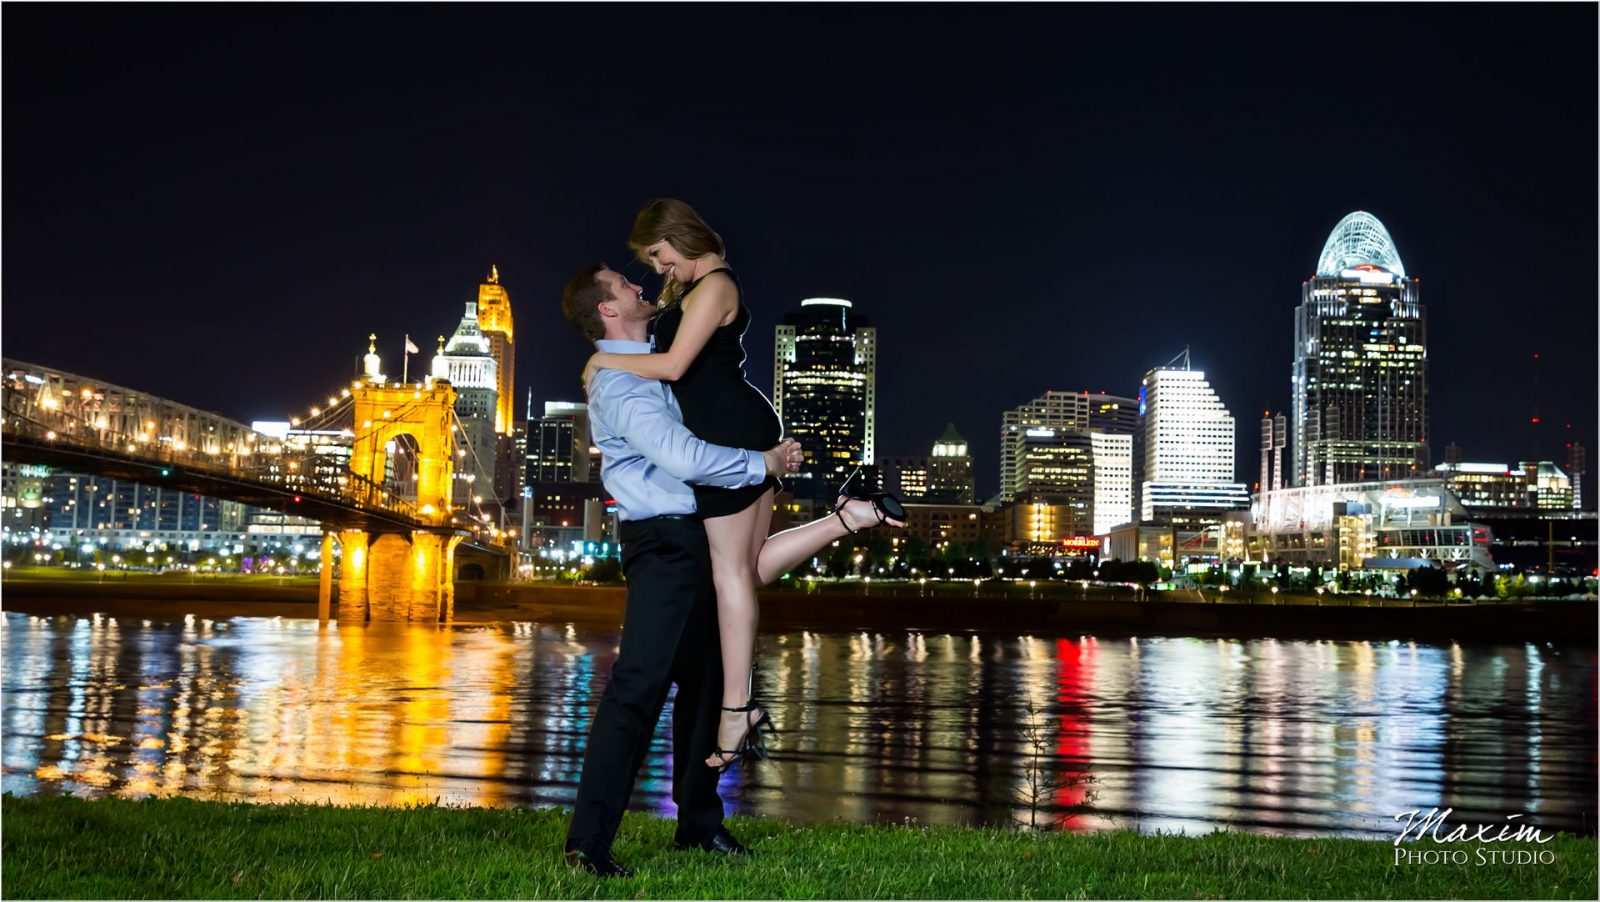 Ohio River Cincinnati skyline night engagement